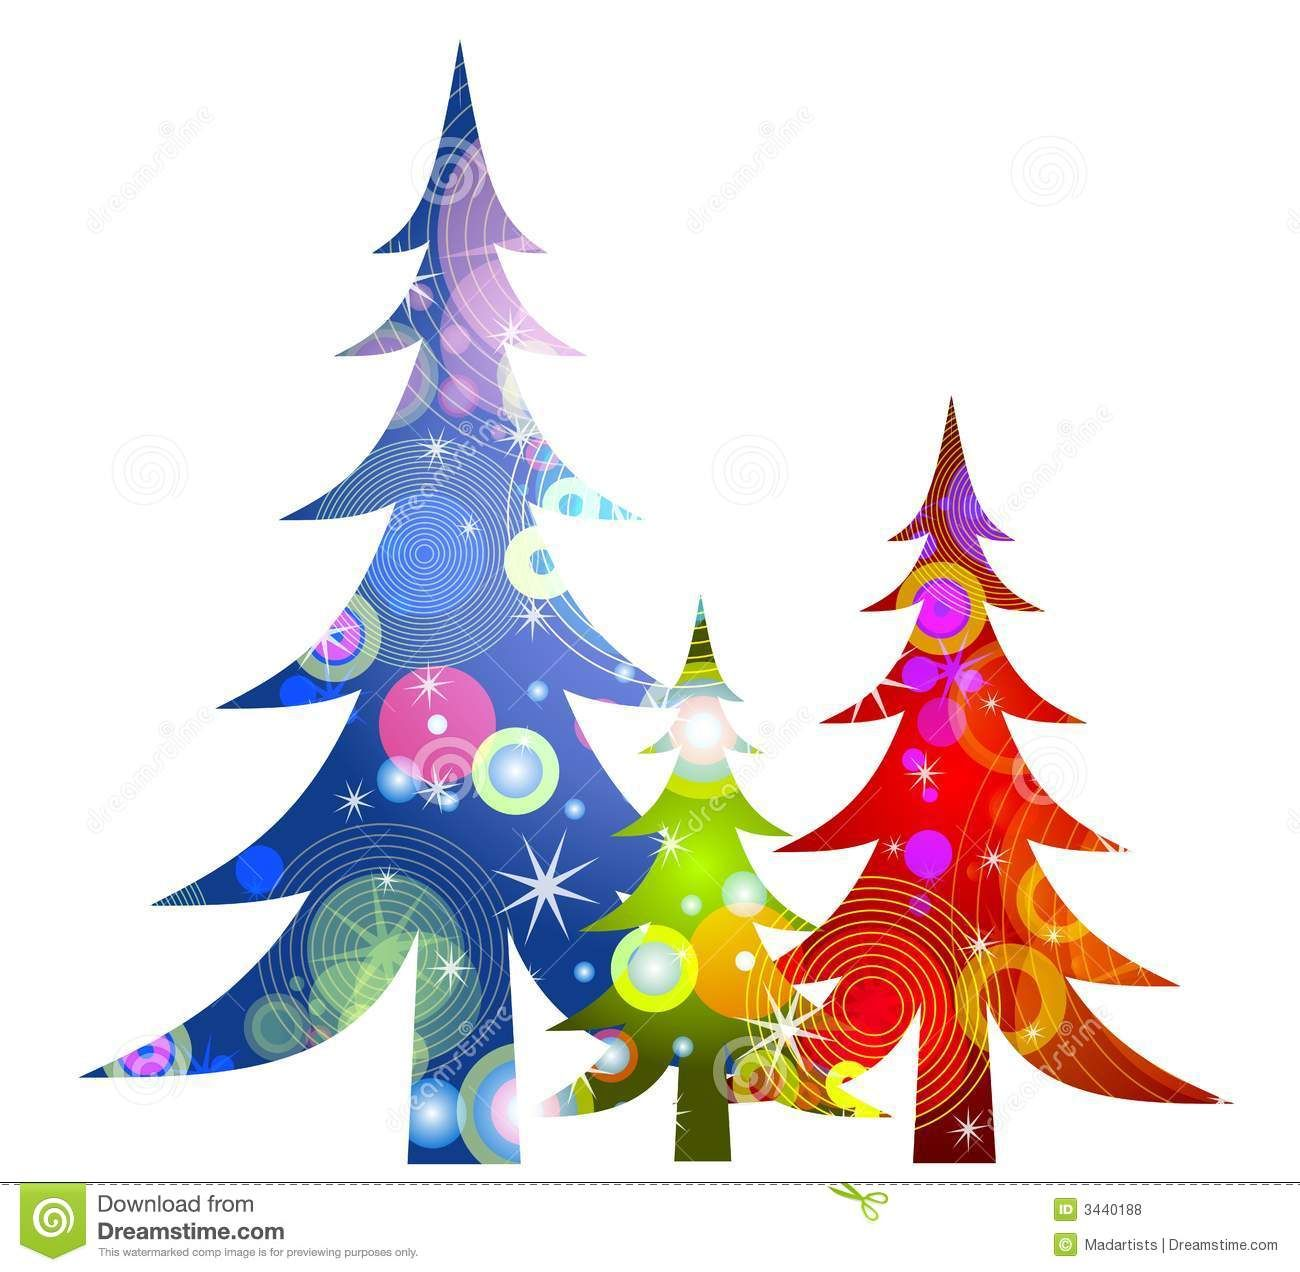 Retro Christmas Trees Clip Art Christmas Art Retro Christmas Tree Christmas Tree Art